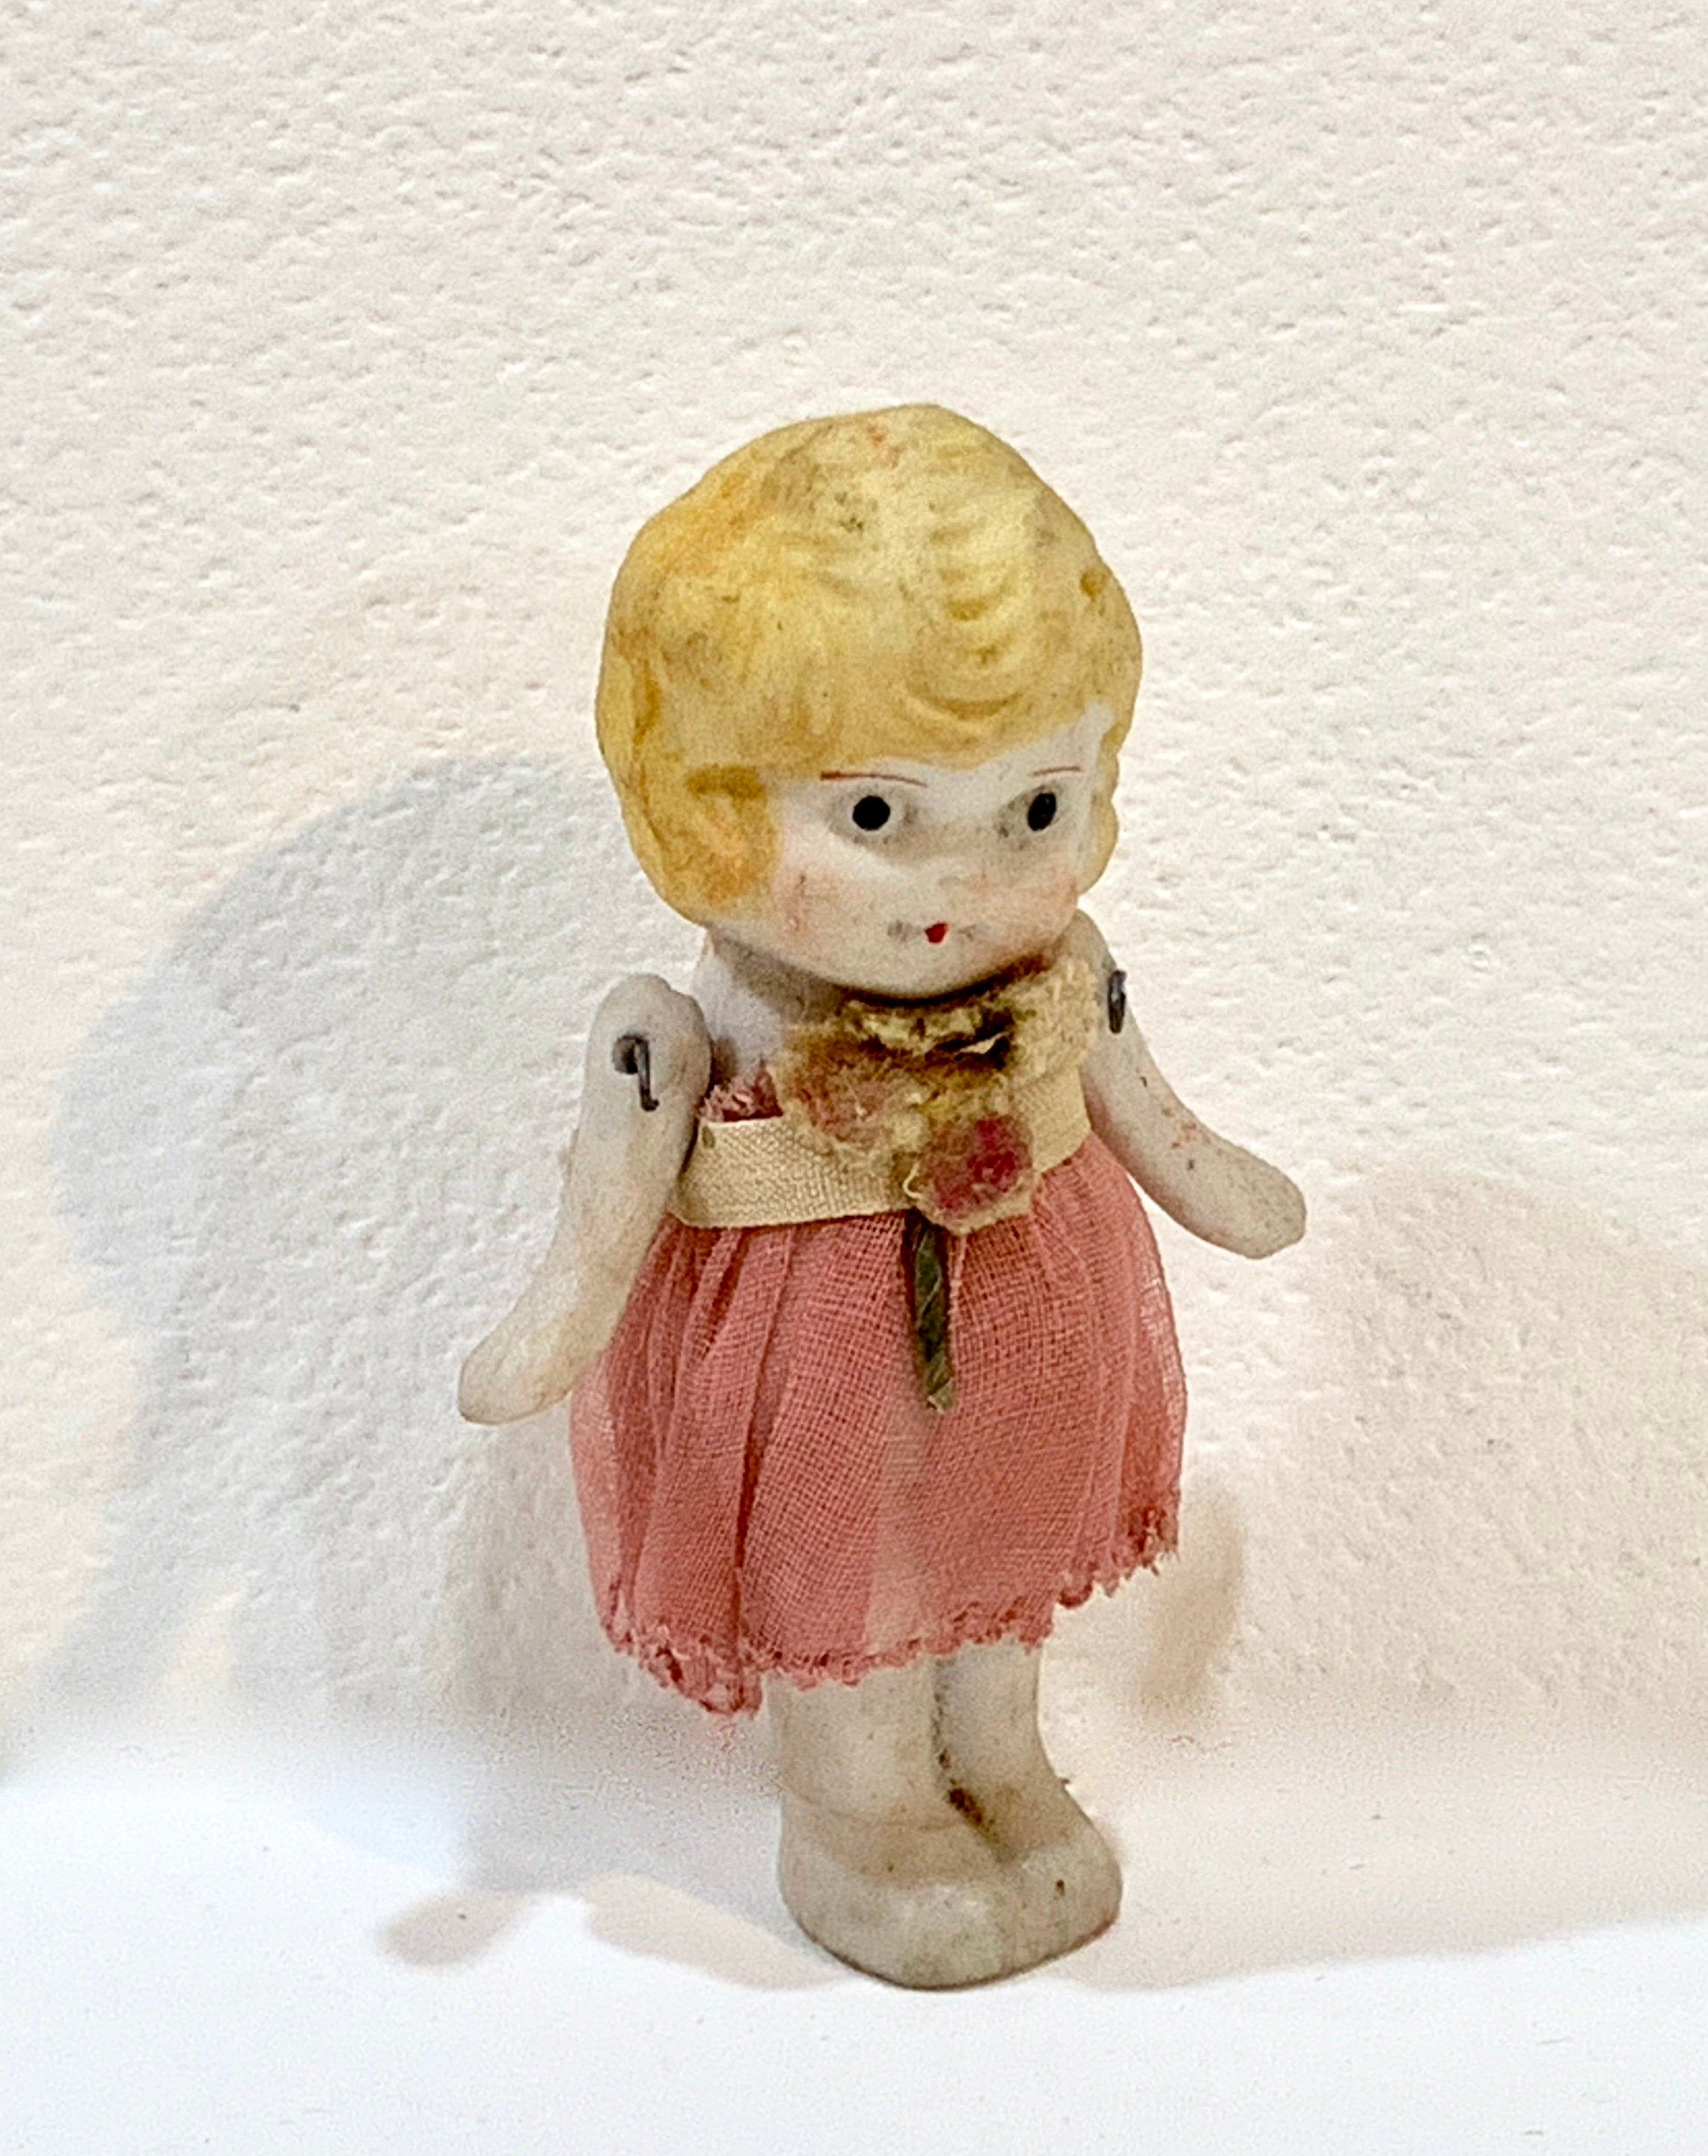 Vintage Bisque Doll, Penny Doll, Porcelain Doll, 8 inch Miniature